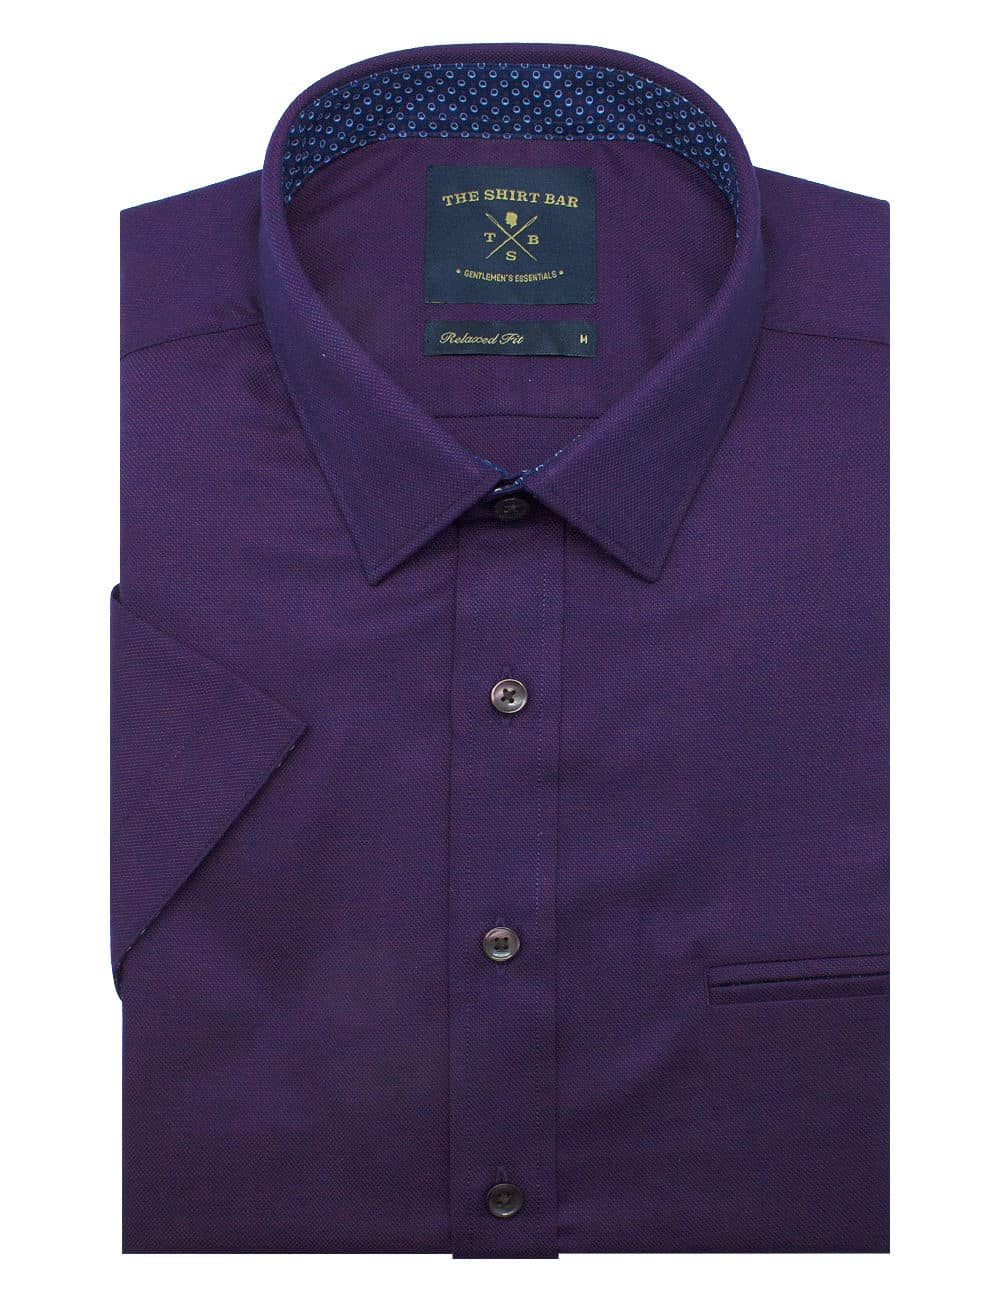 Relaxed Fit Purple Eco-ol Bamboo Blend Wrinkle Free Short Sleeve Shirt RF9SNB8.17